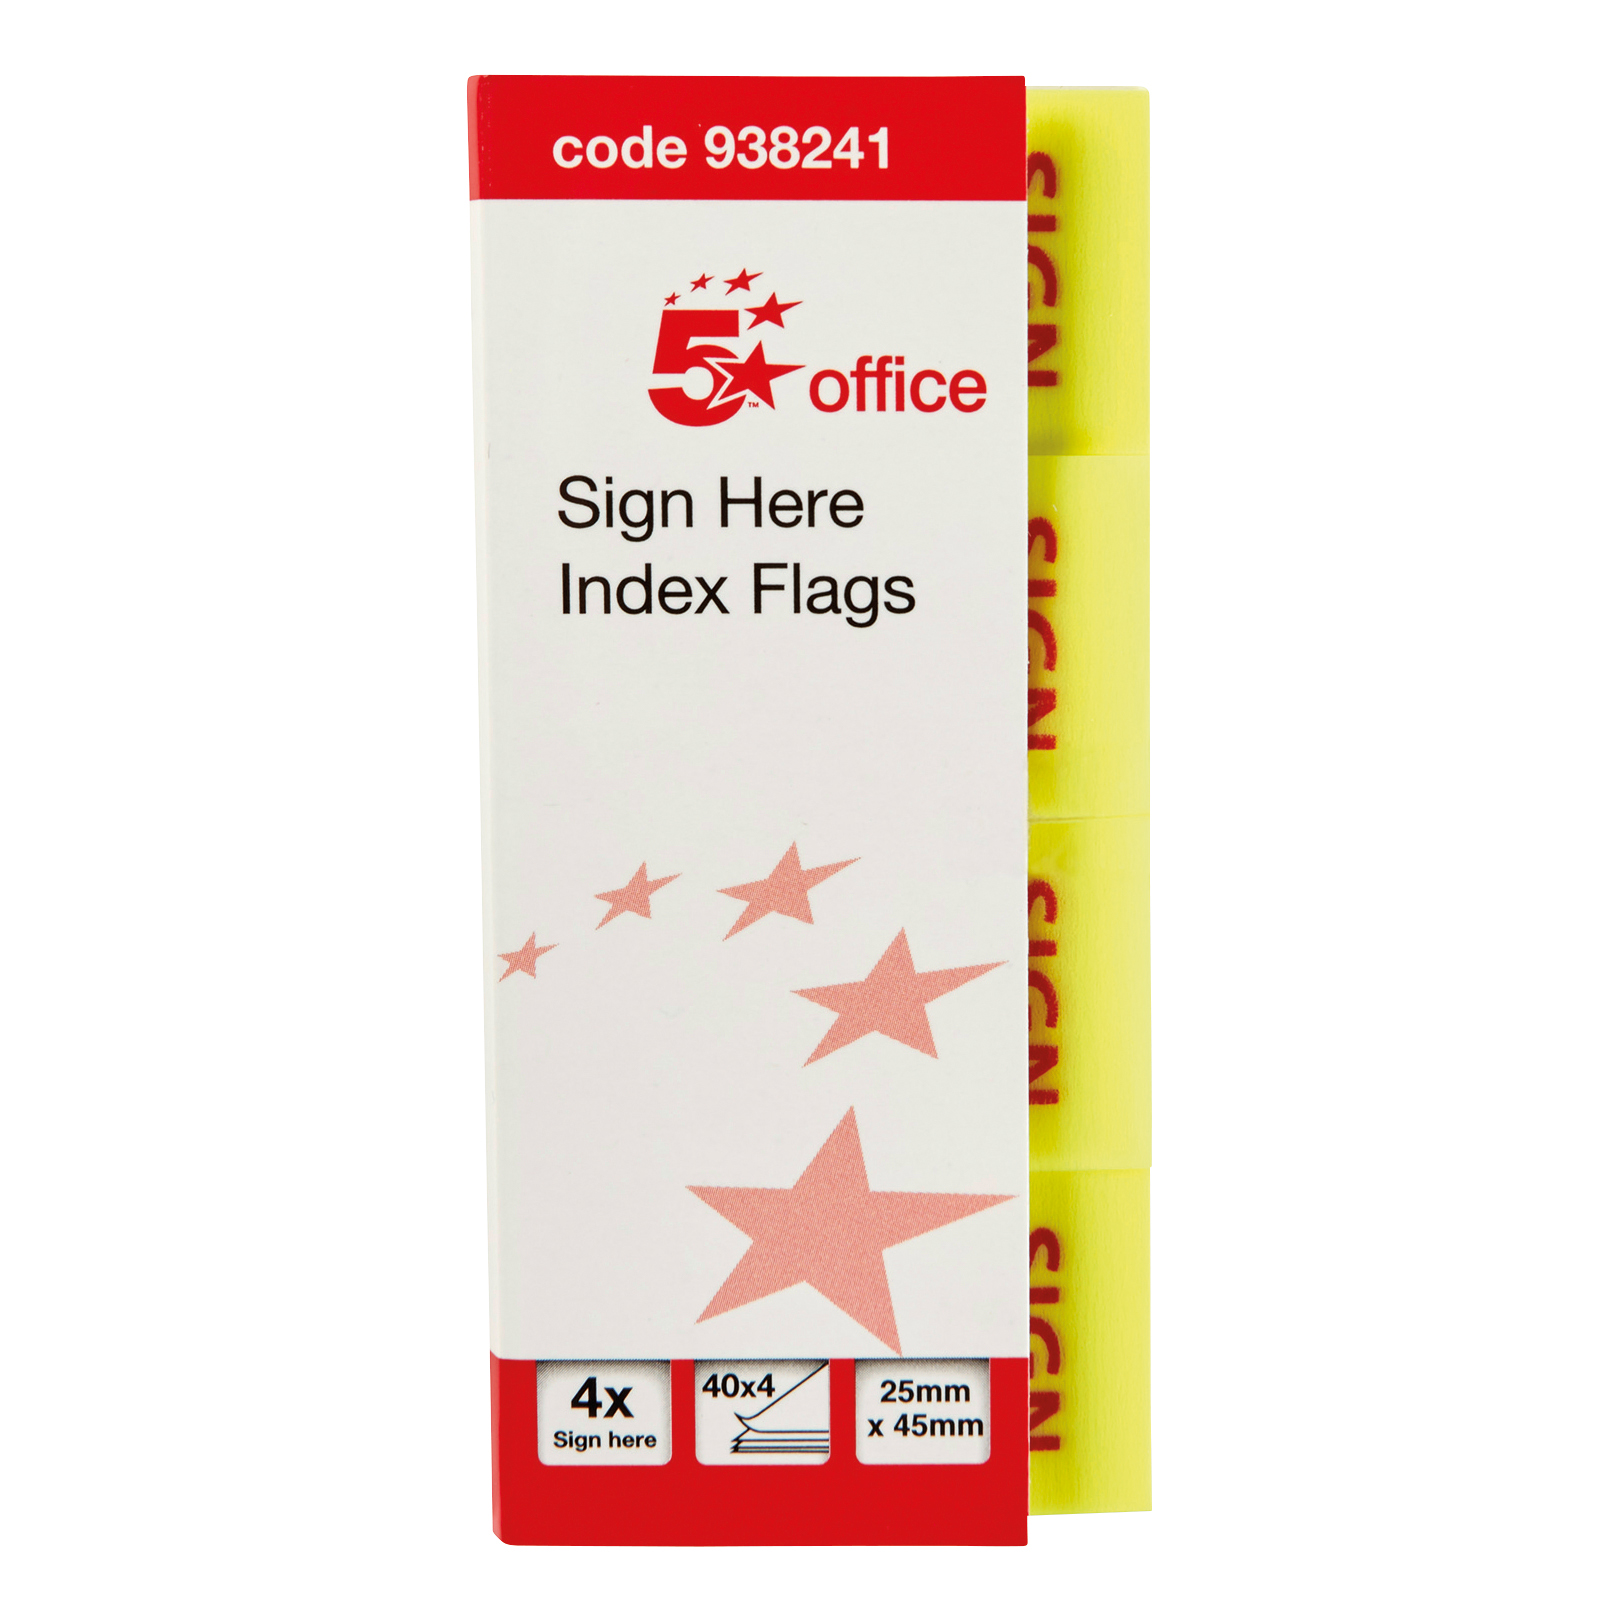 Tabs 5 Star Office Sign Here Index Flags Tab With Red Arrow 46x25mm 40x4 per cover 5 covers 800 Flags